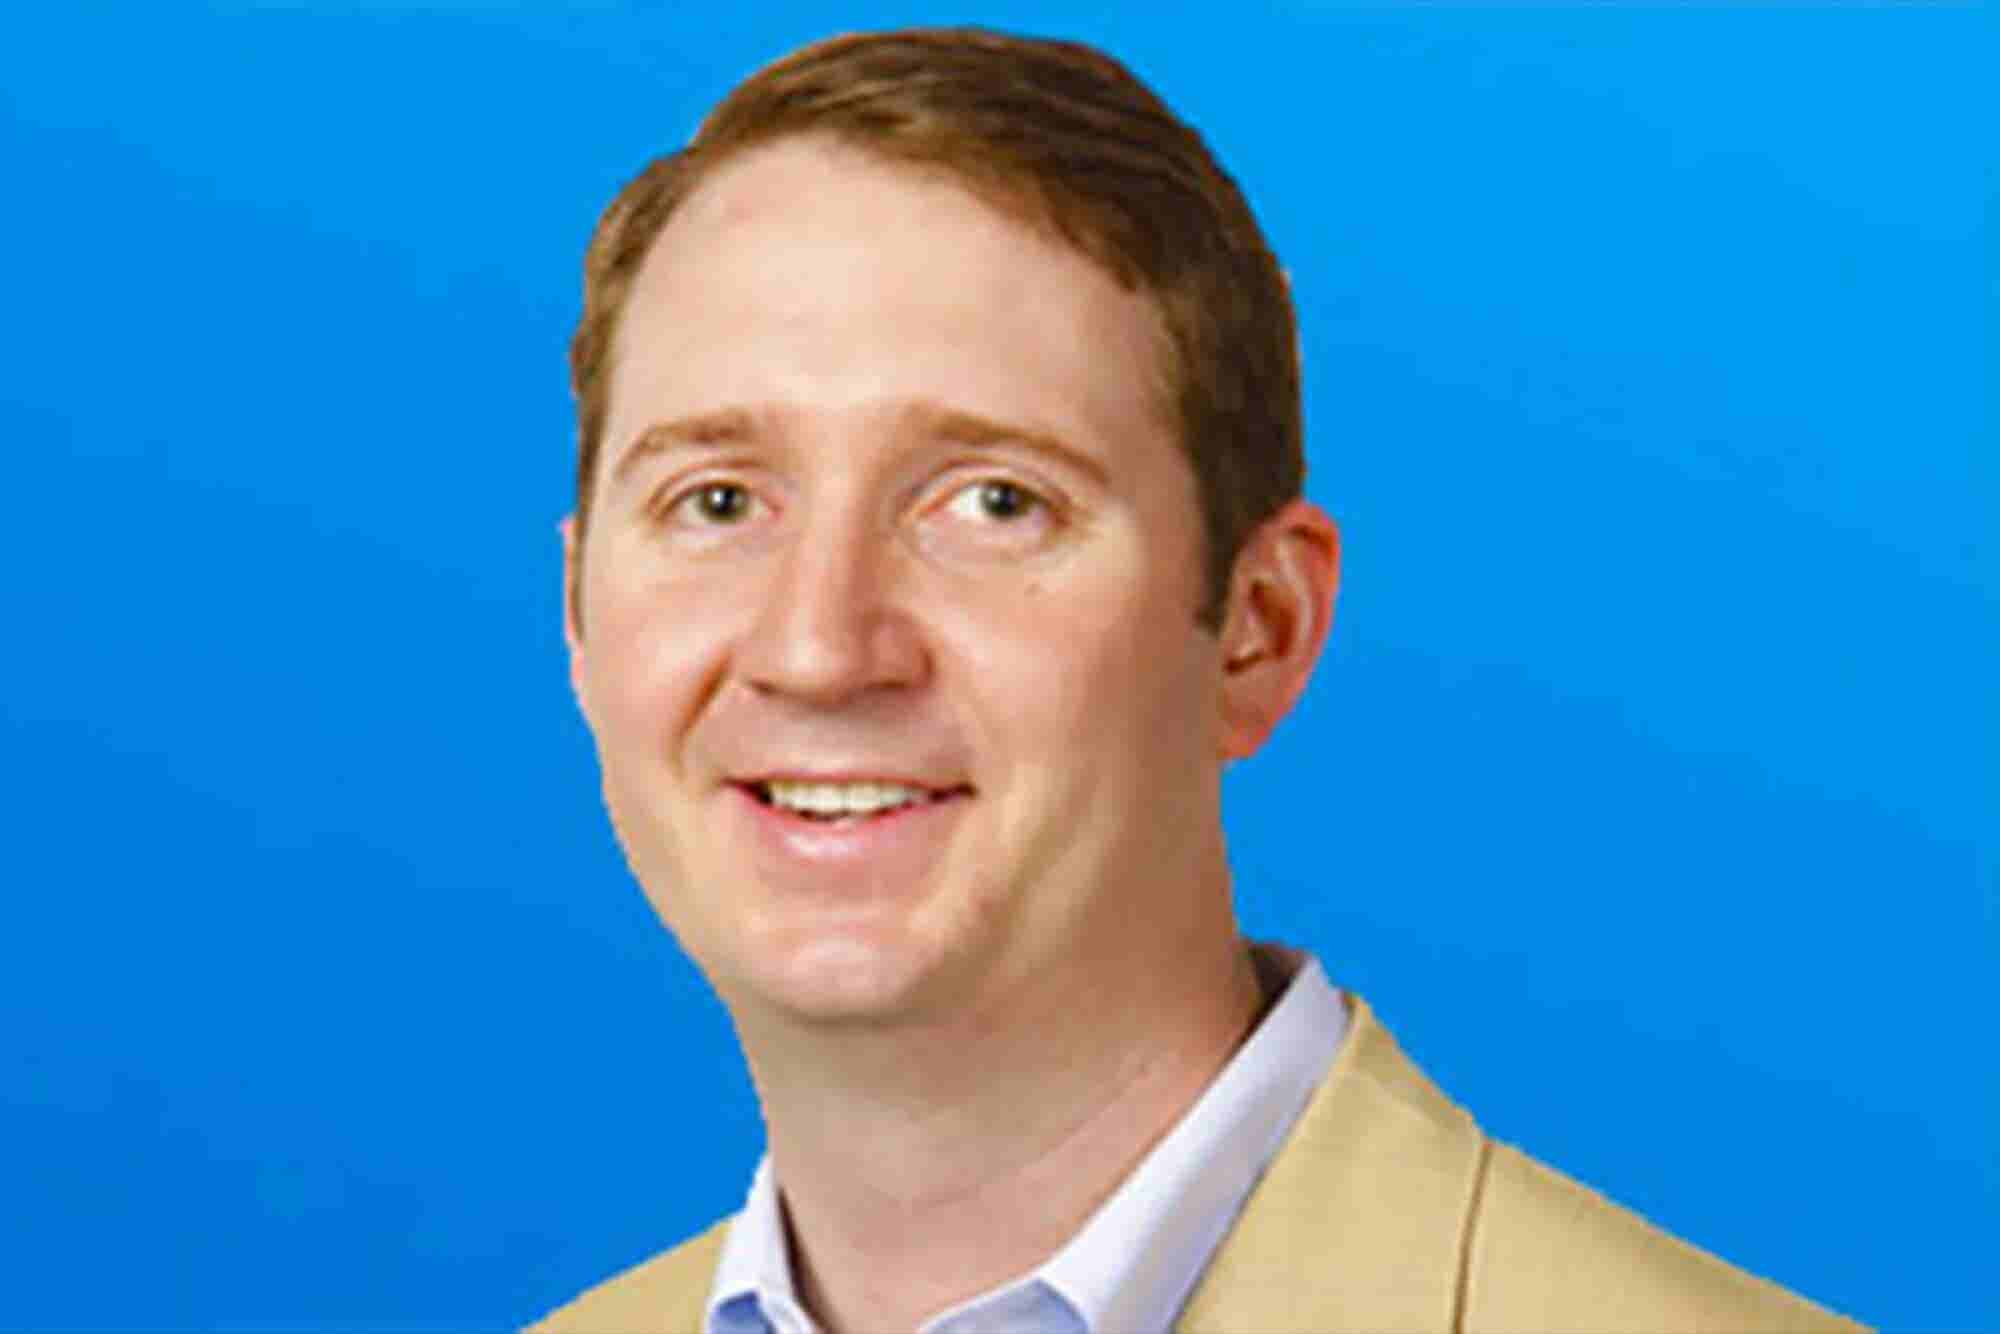 LivingSocial's Tim O'Shaughnessy on the Power of Decisions